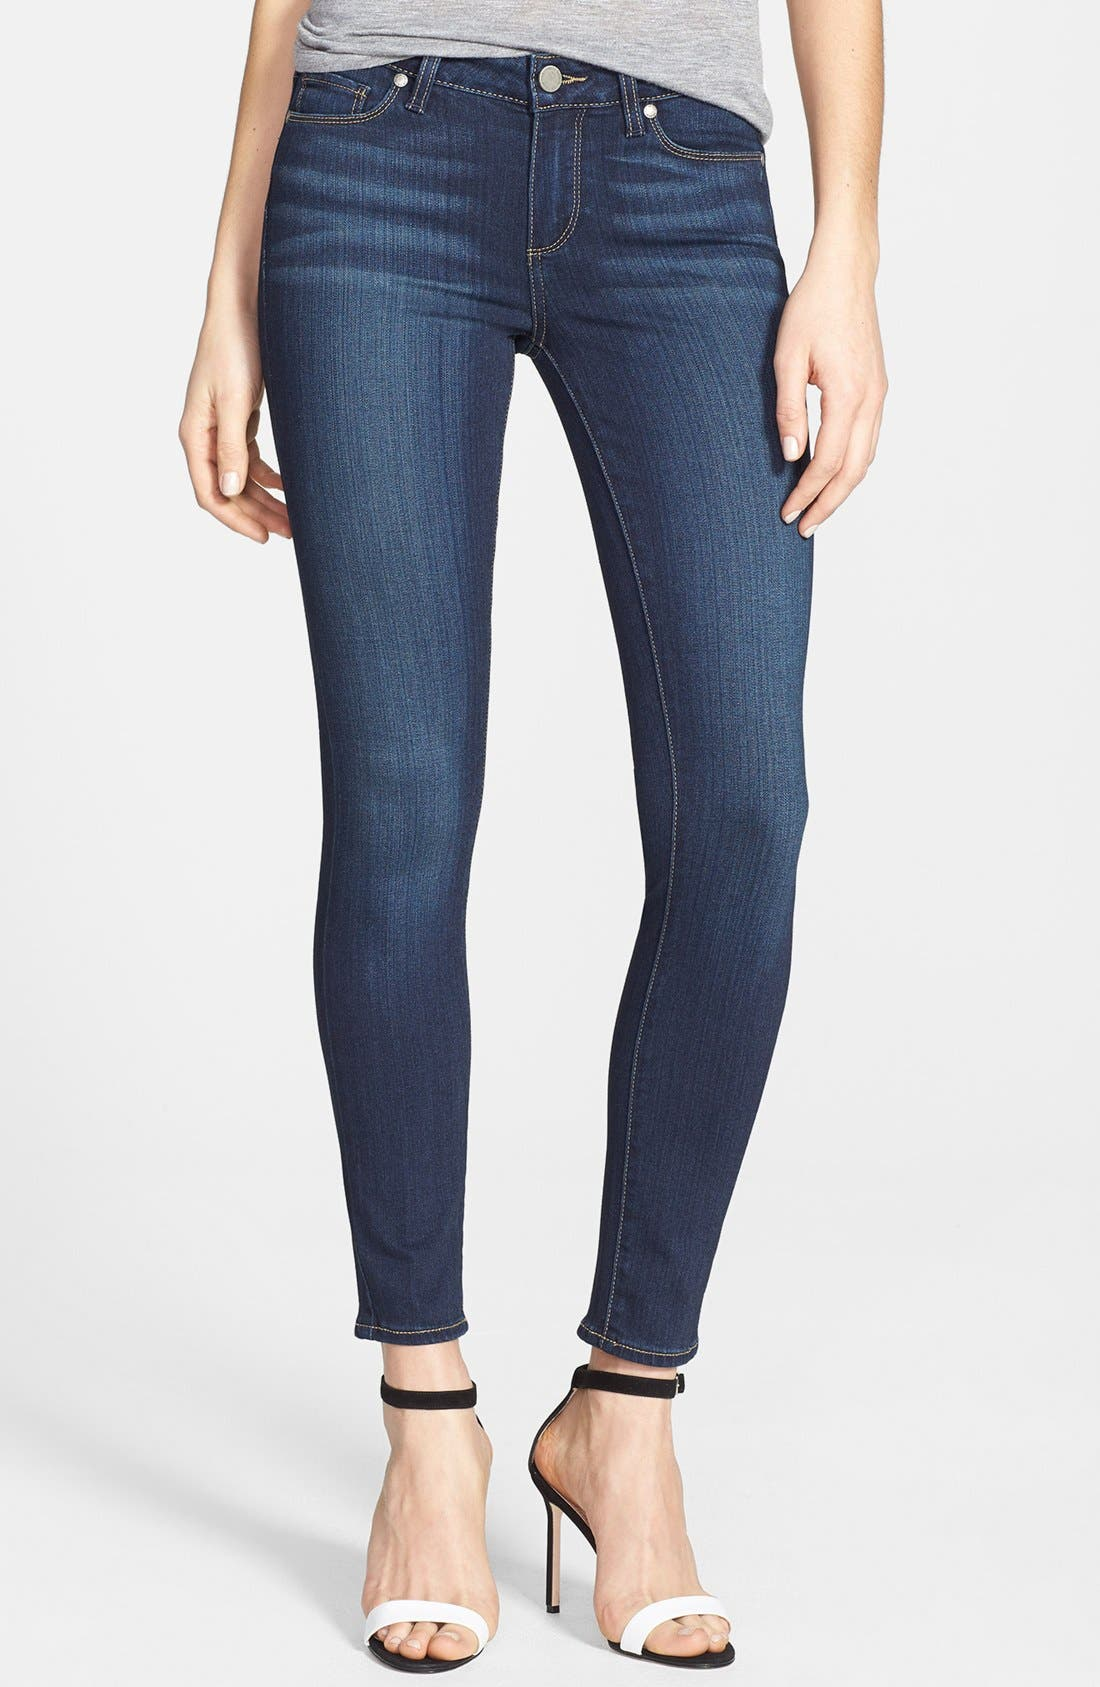 Transcend - Verdugo Ankle Skinny Jeans,                             Main thumbnail 1, color,                             Nottingham